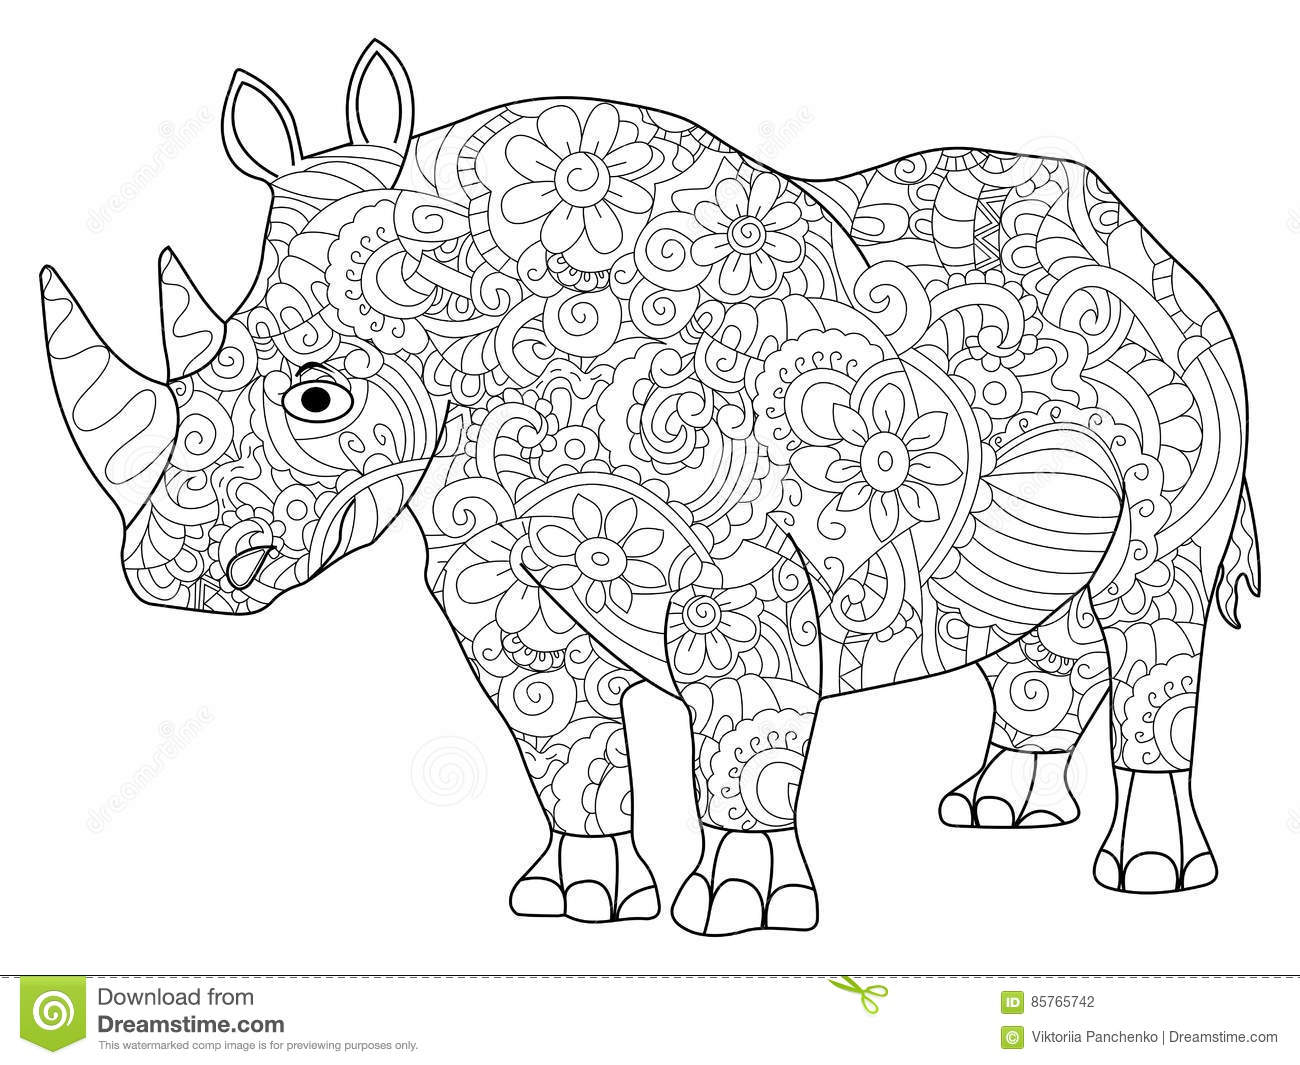 Hippopotamus Animal Coloring Book For Adults Vector Illustration Anti Stress Adult Zentangle Style Black And White Lines Lace Pattern